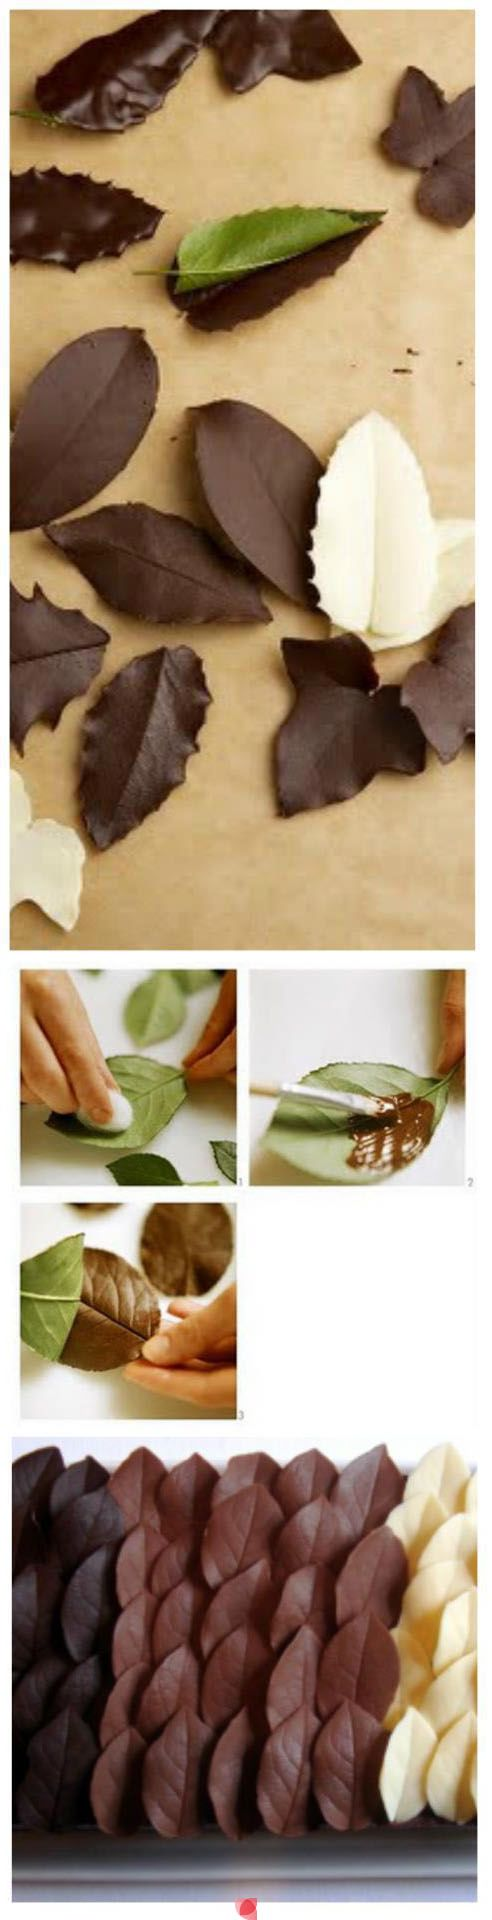 make chocolate leaves